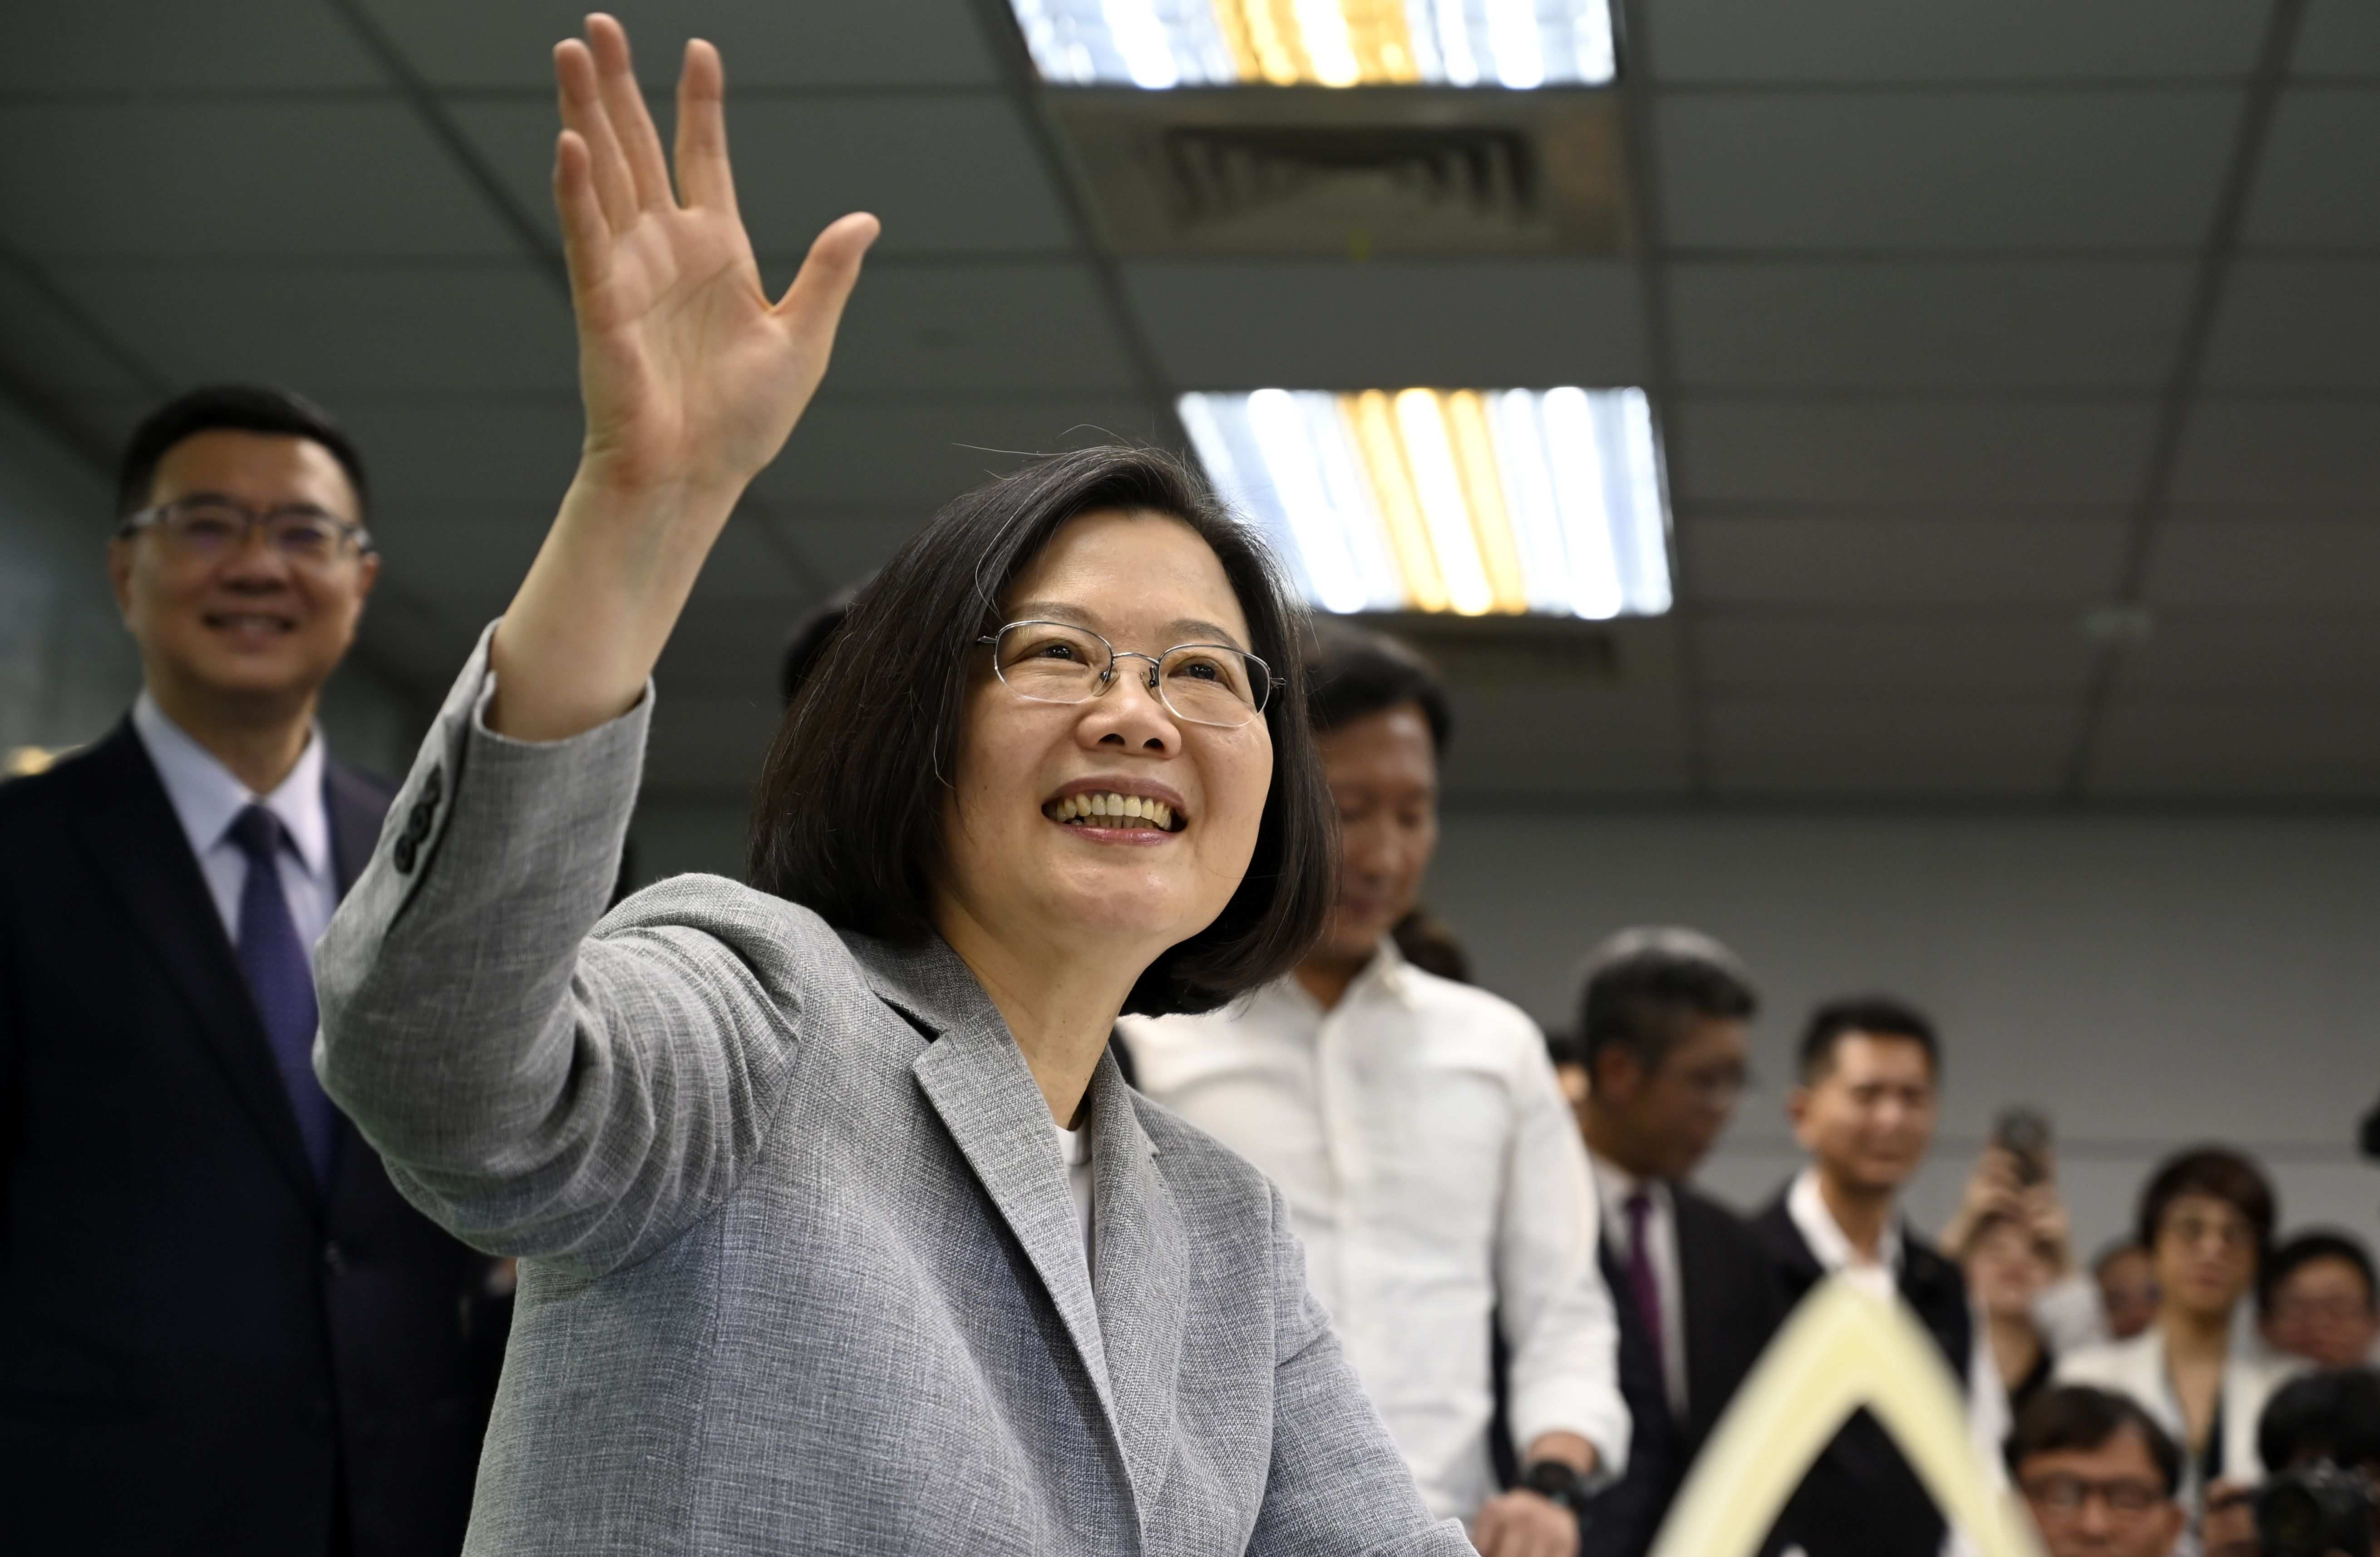 Taiwan's President Tsai Ing-wen waves while registering as the ruling Democratic Progressive Party (DPP) 2020 presidential candidate at the party's headquarter in Taipei on March 21, 2019. (SAM YEH/AFP/Getty)